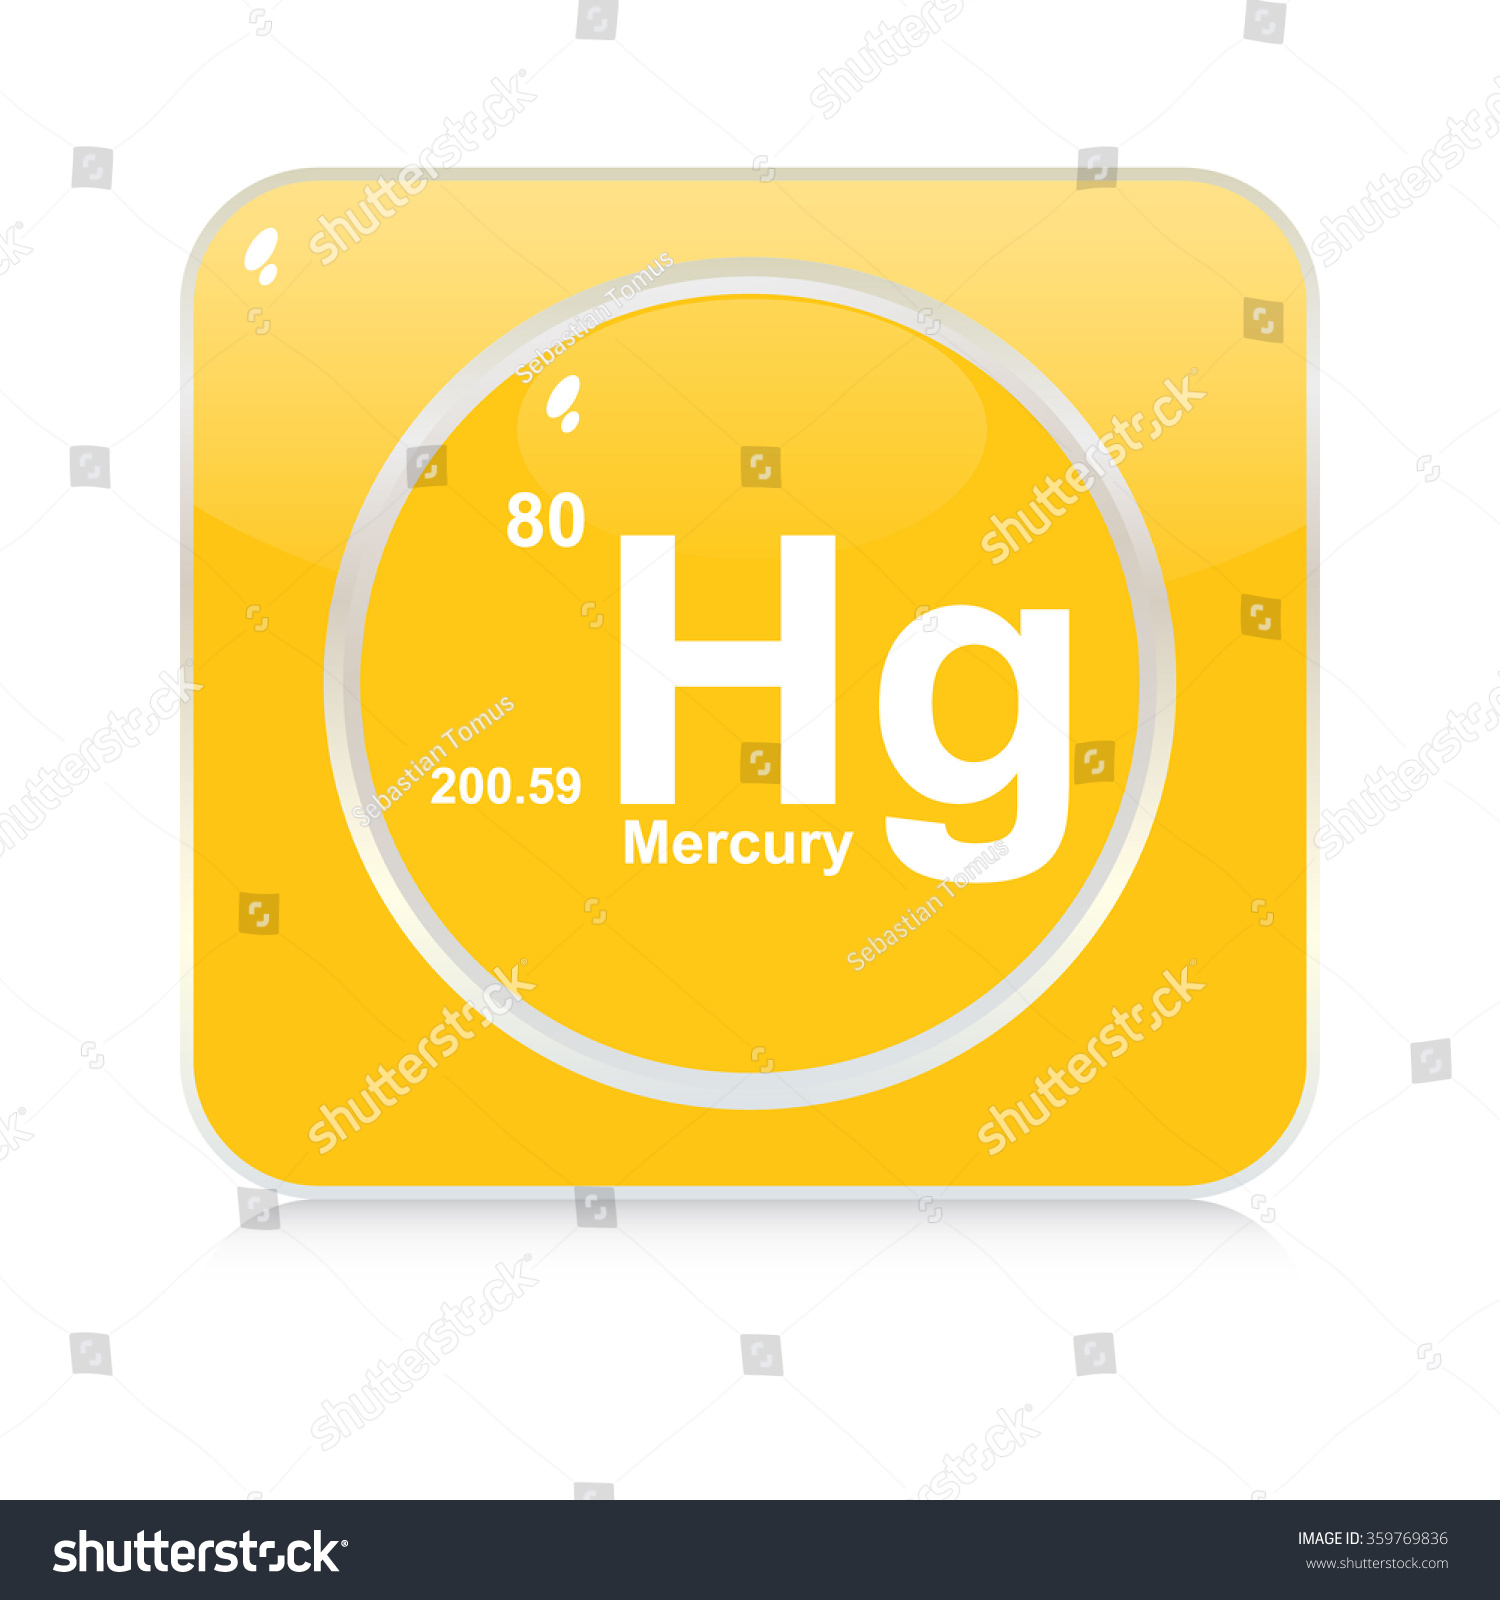 Mercury chemical element button stock vector 359769836 shutterstock mercury chemical element button buycottarizona Gallery